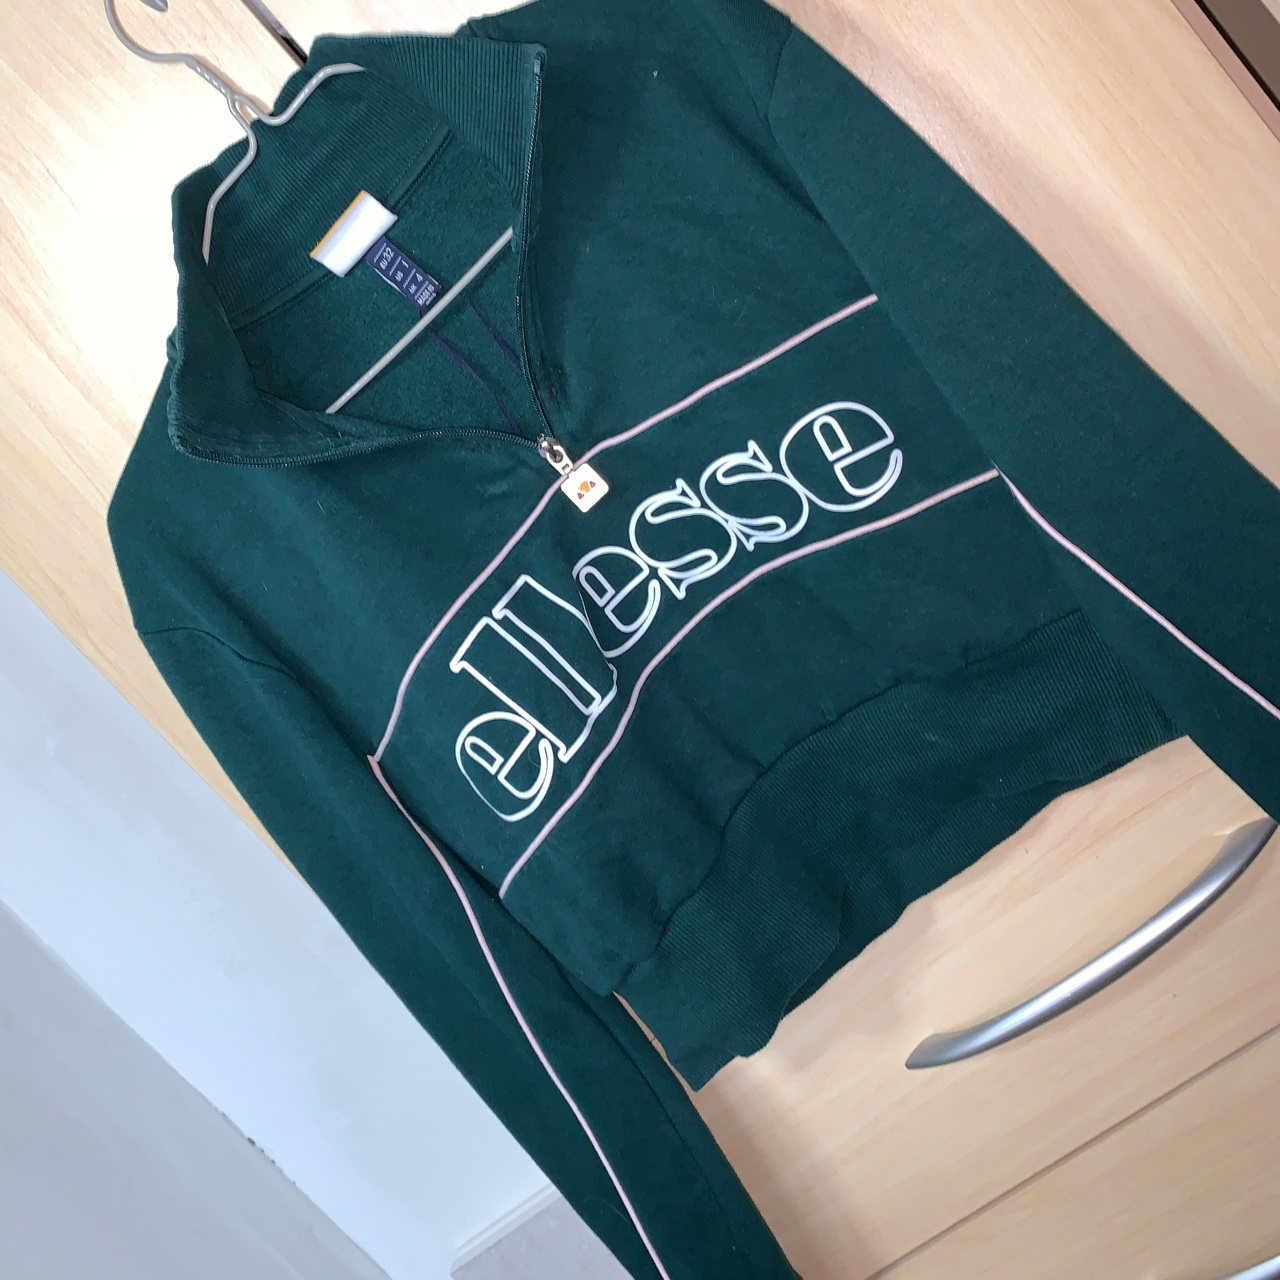 ellesse dark green crop top hoodie jumper had light depop depop